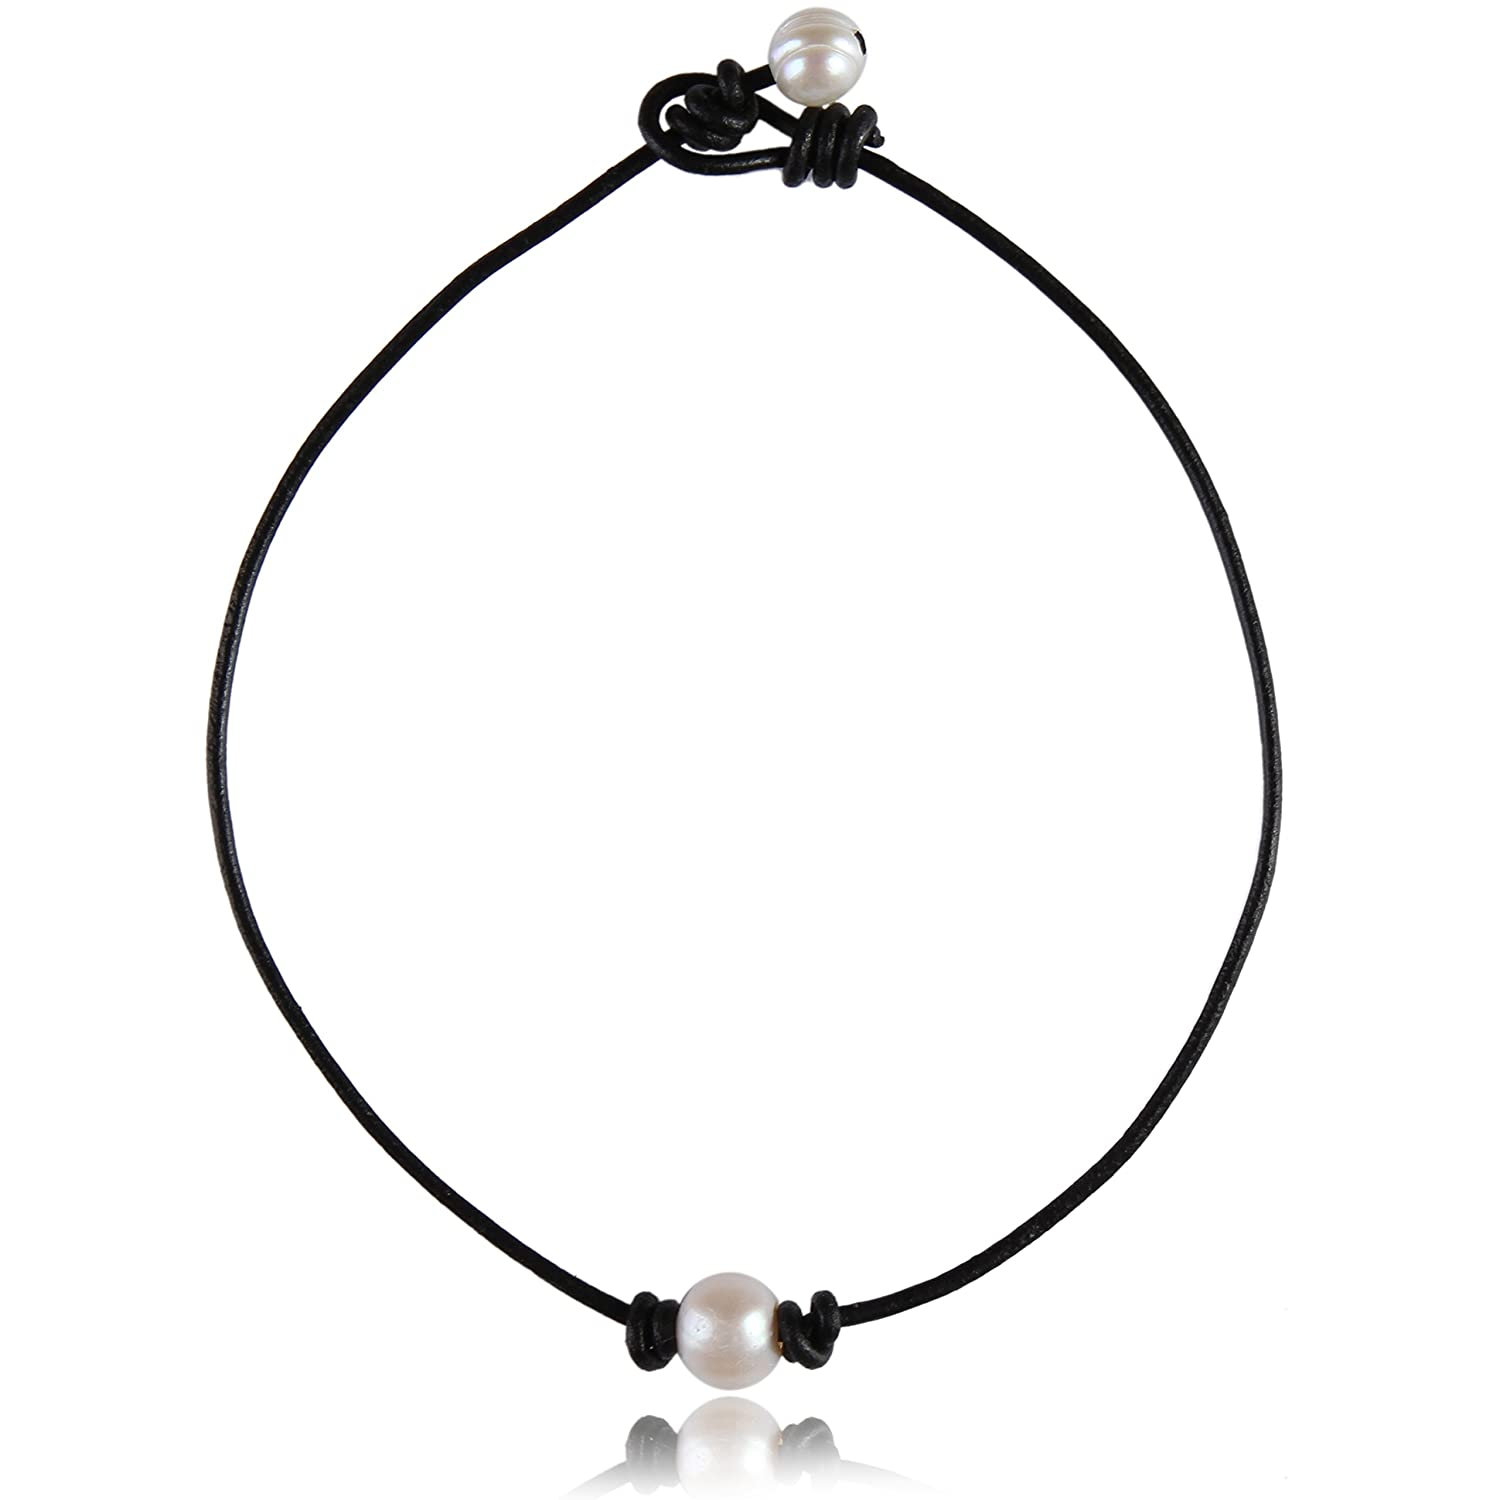 ella single clear floating pearl on w necklace short maui chain driftwood may bead products